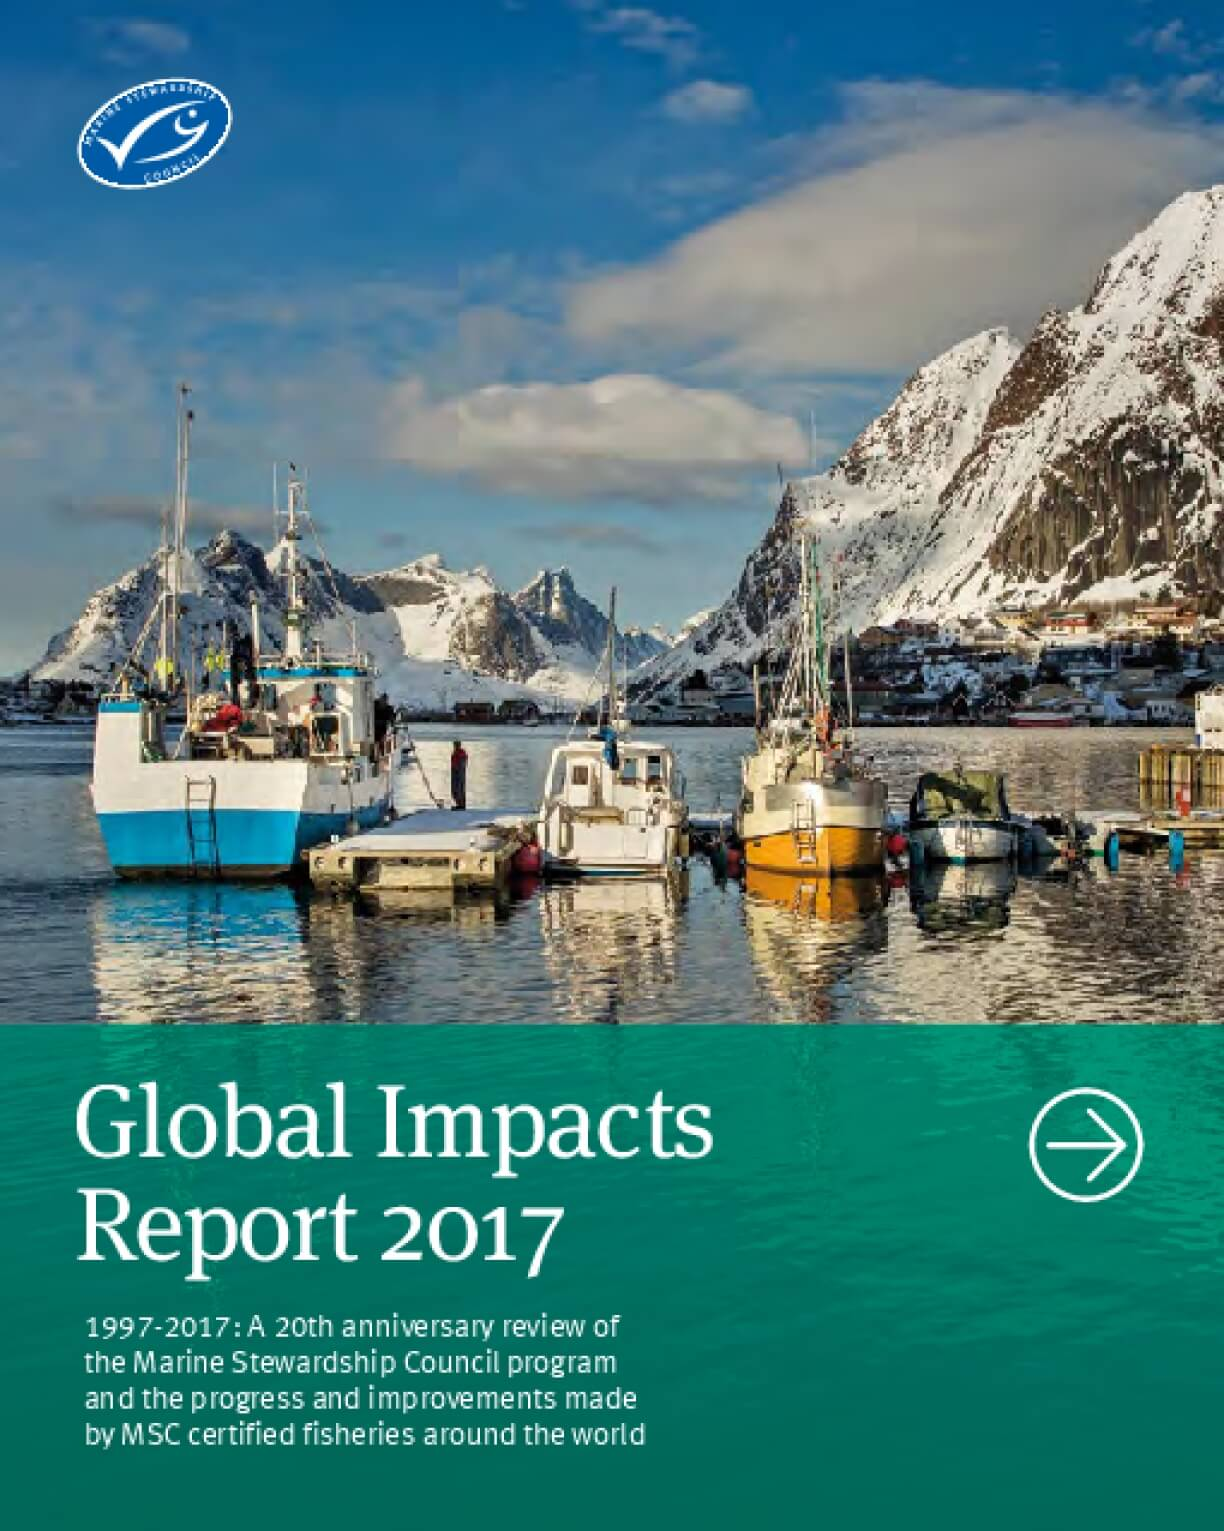 Global Impacts Report 2017